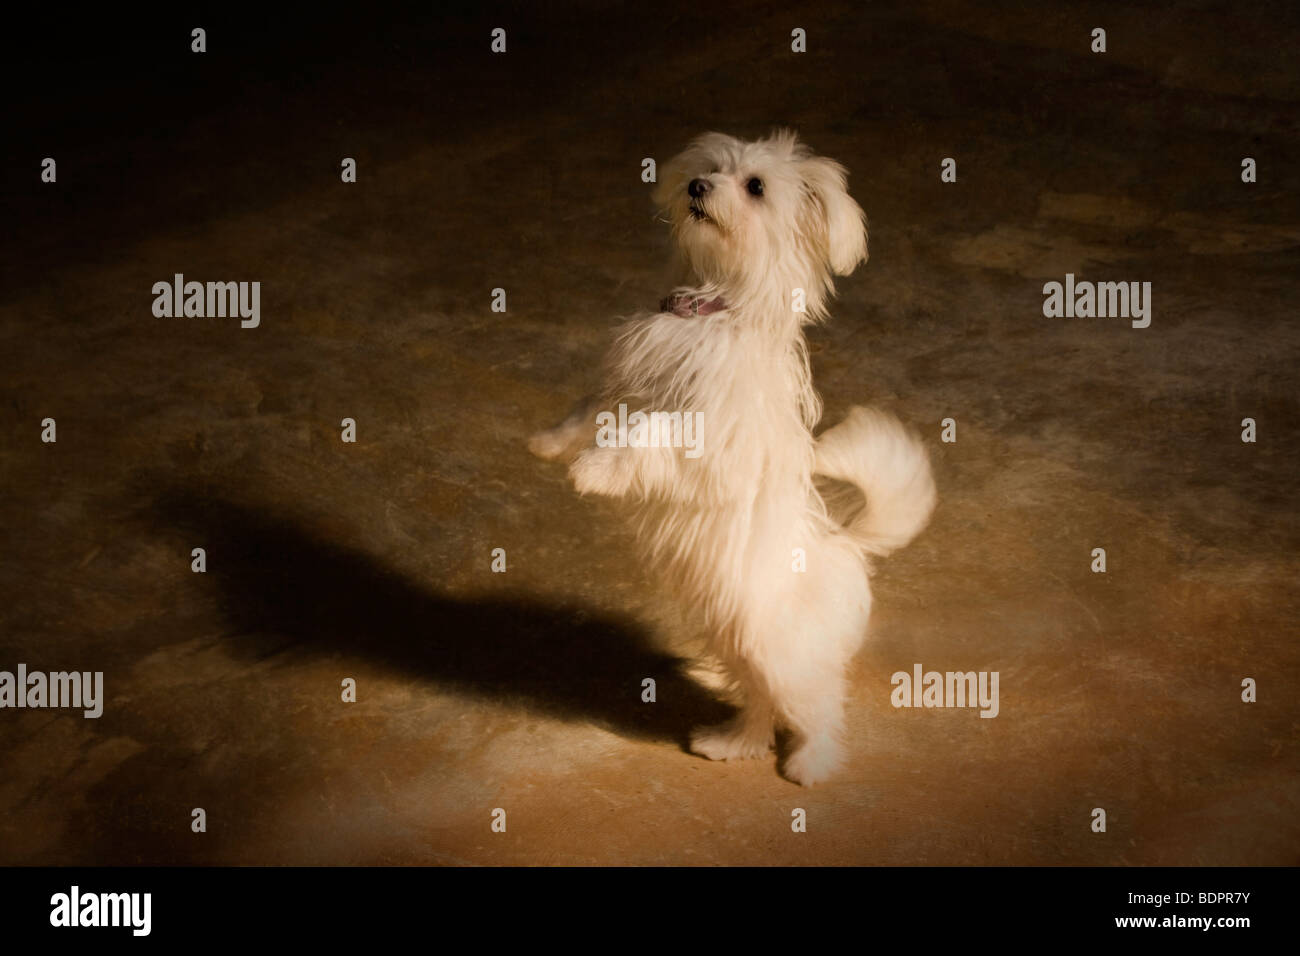 Daisy the cute dog standing on her hind legs - Stock Image